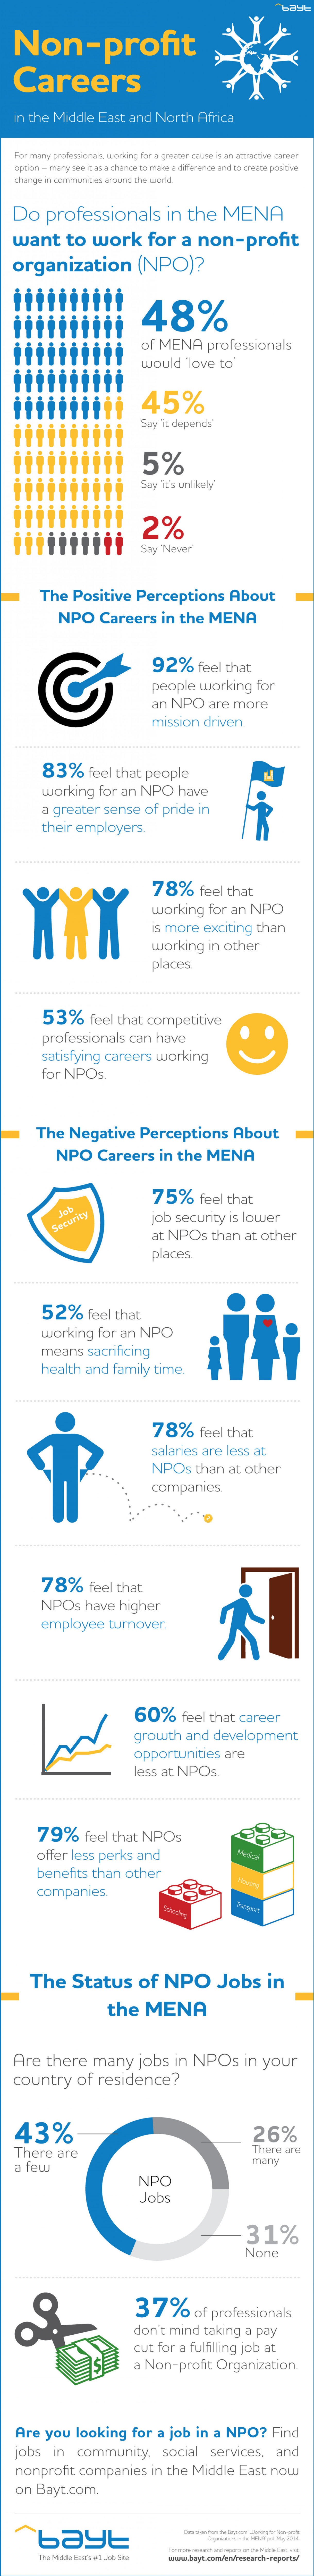 Working for a Non-profit in the Middle East and North Africa Infographic